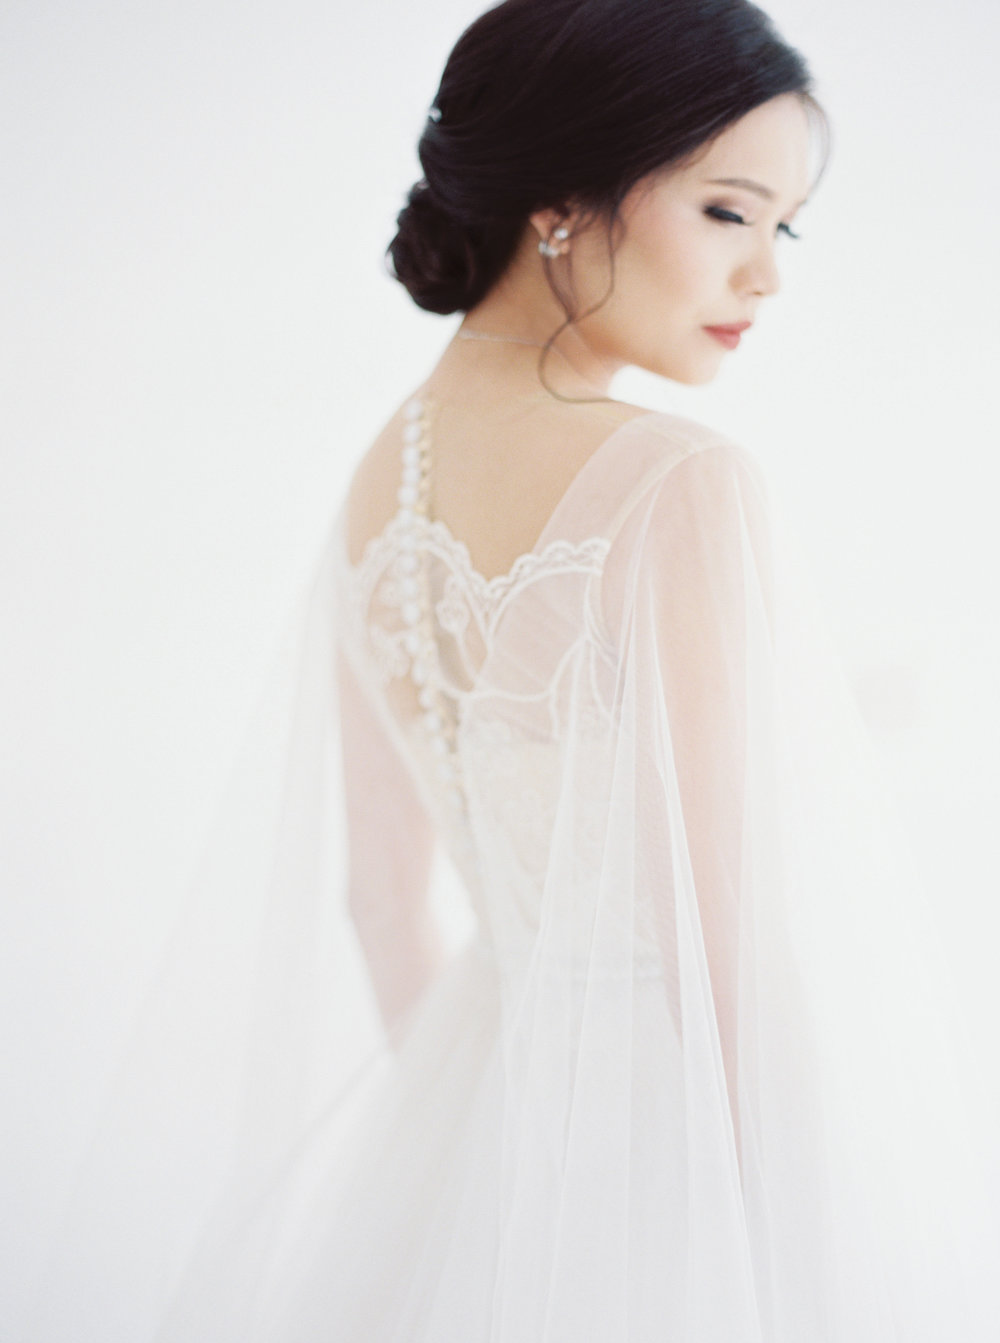 happy-ethereal bridal portrait-studio june-bramanta wijaya-mila wijaya-9.jpg